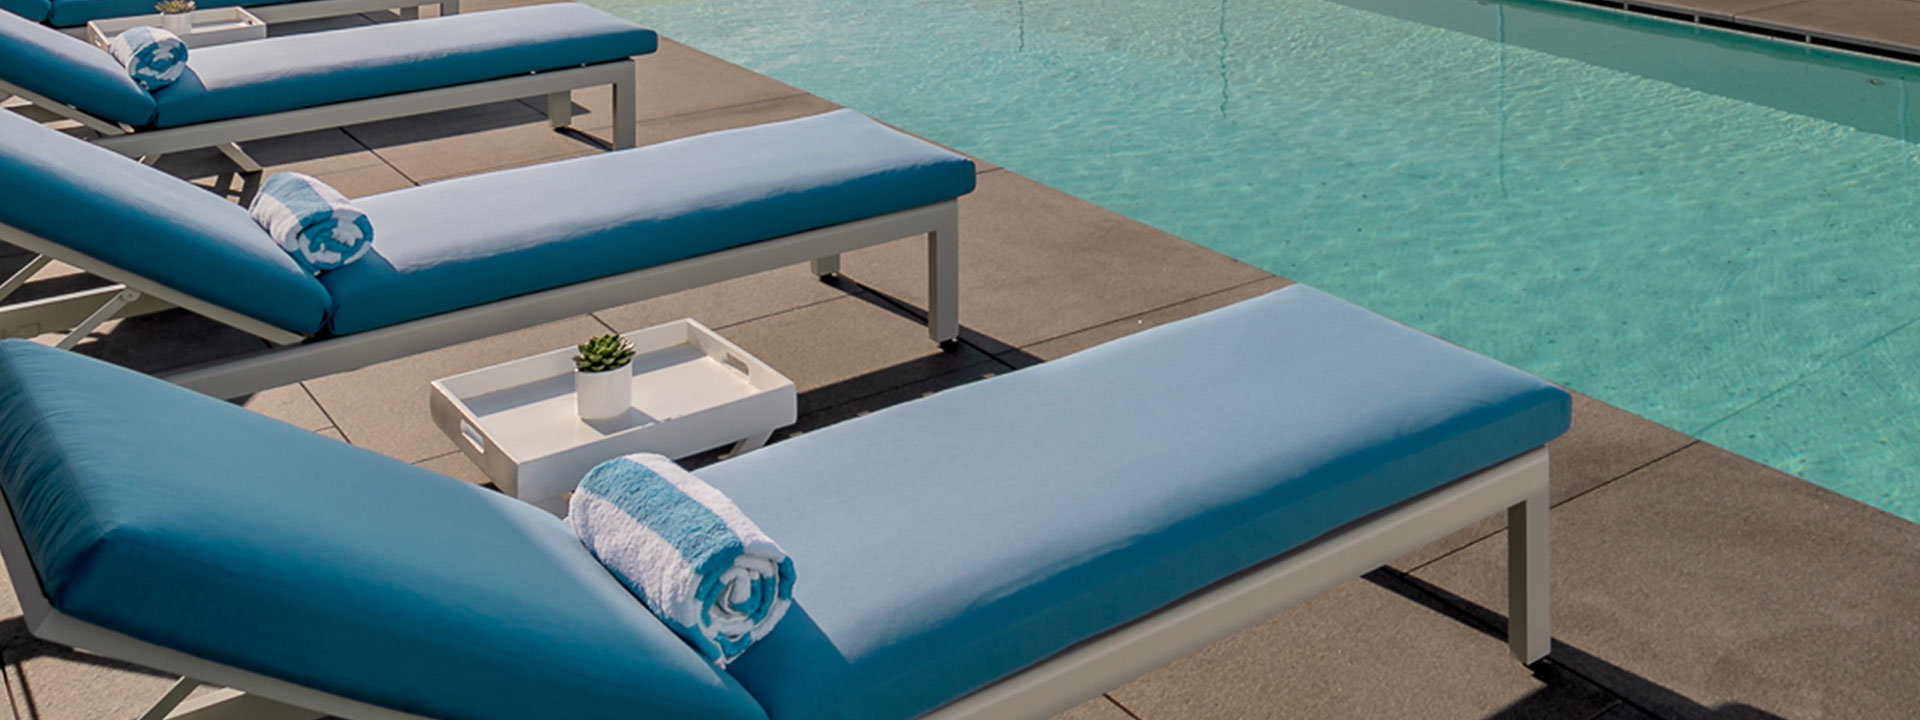 Four blue sunbeds facing the pool water on the rooftop of The Berkeley